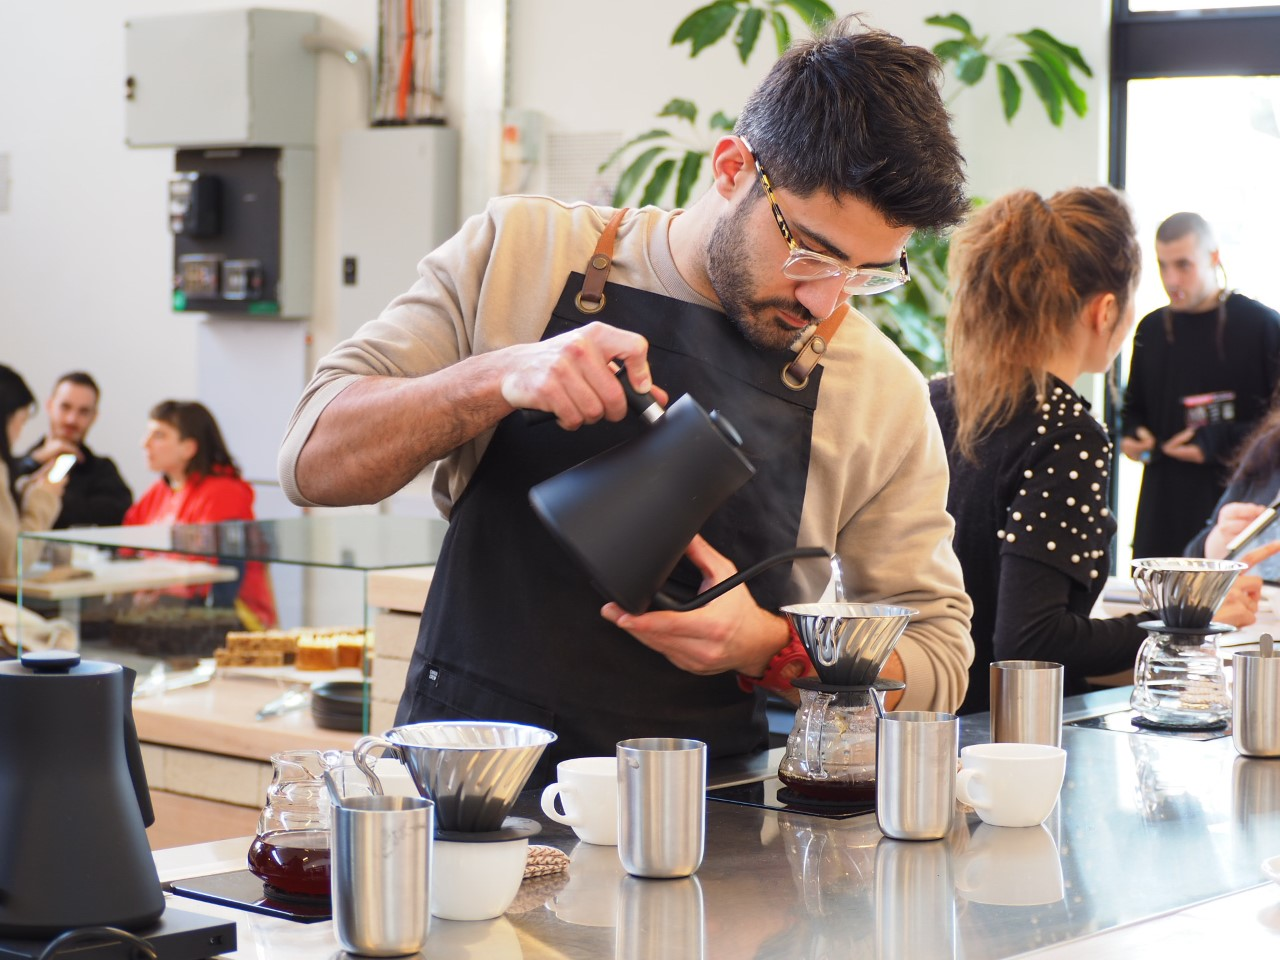 ONA Coffee Melbourne pour over